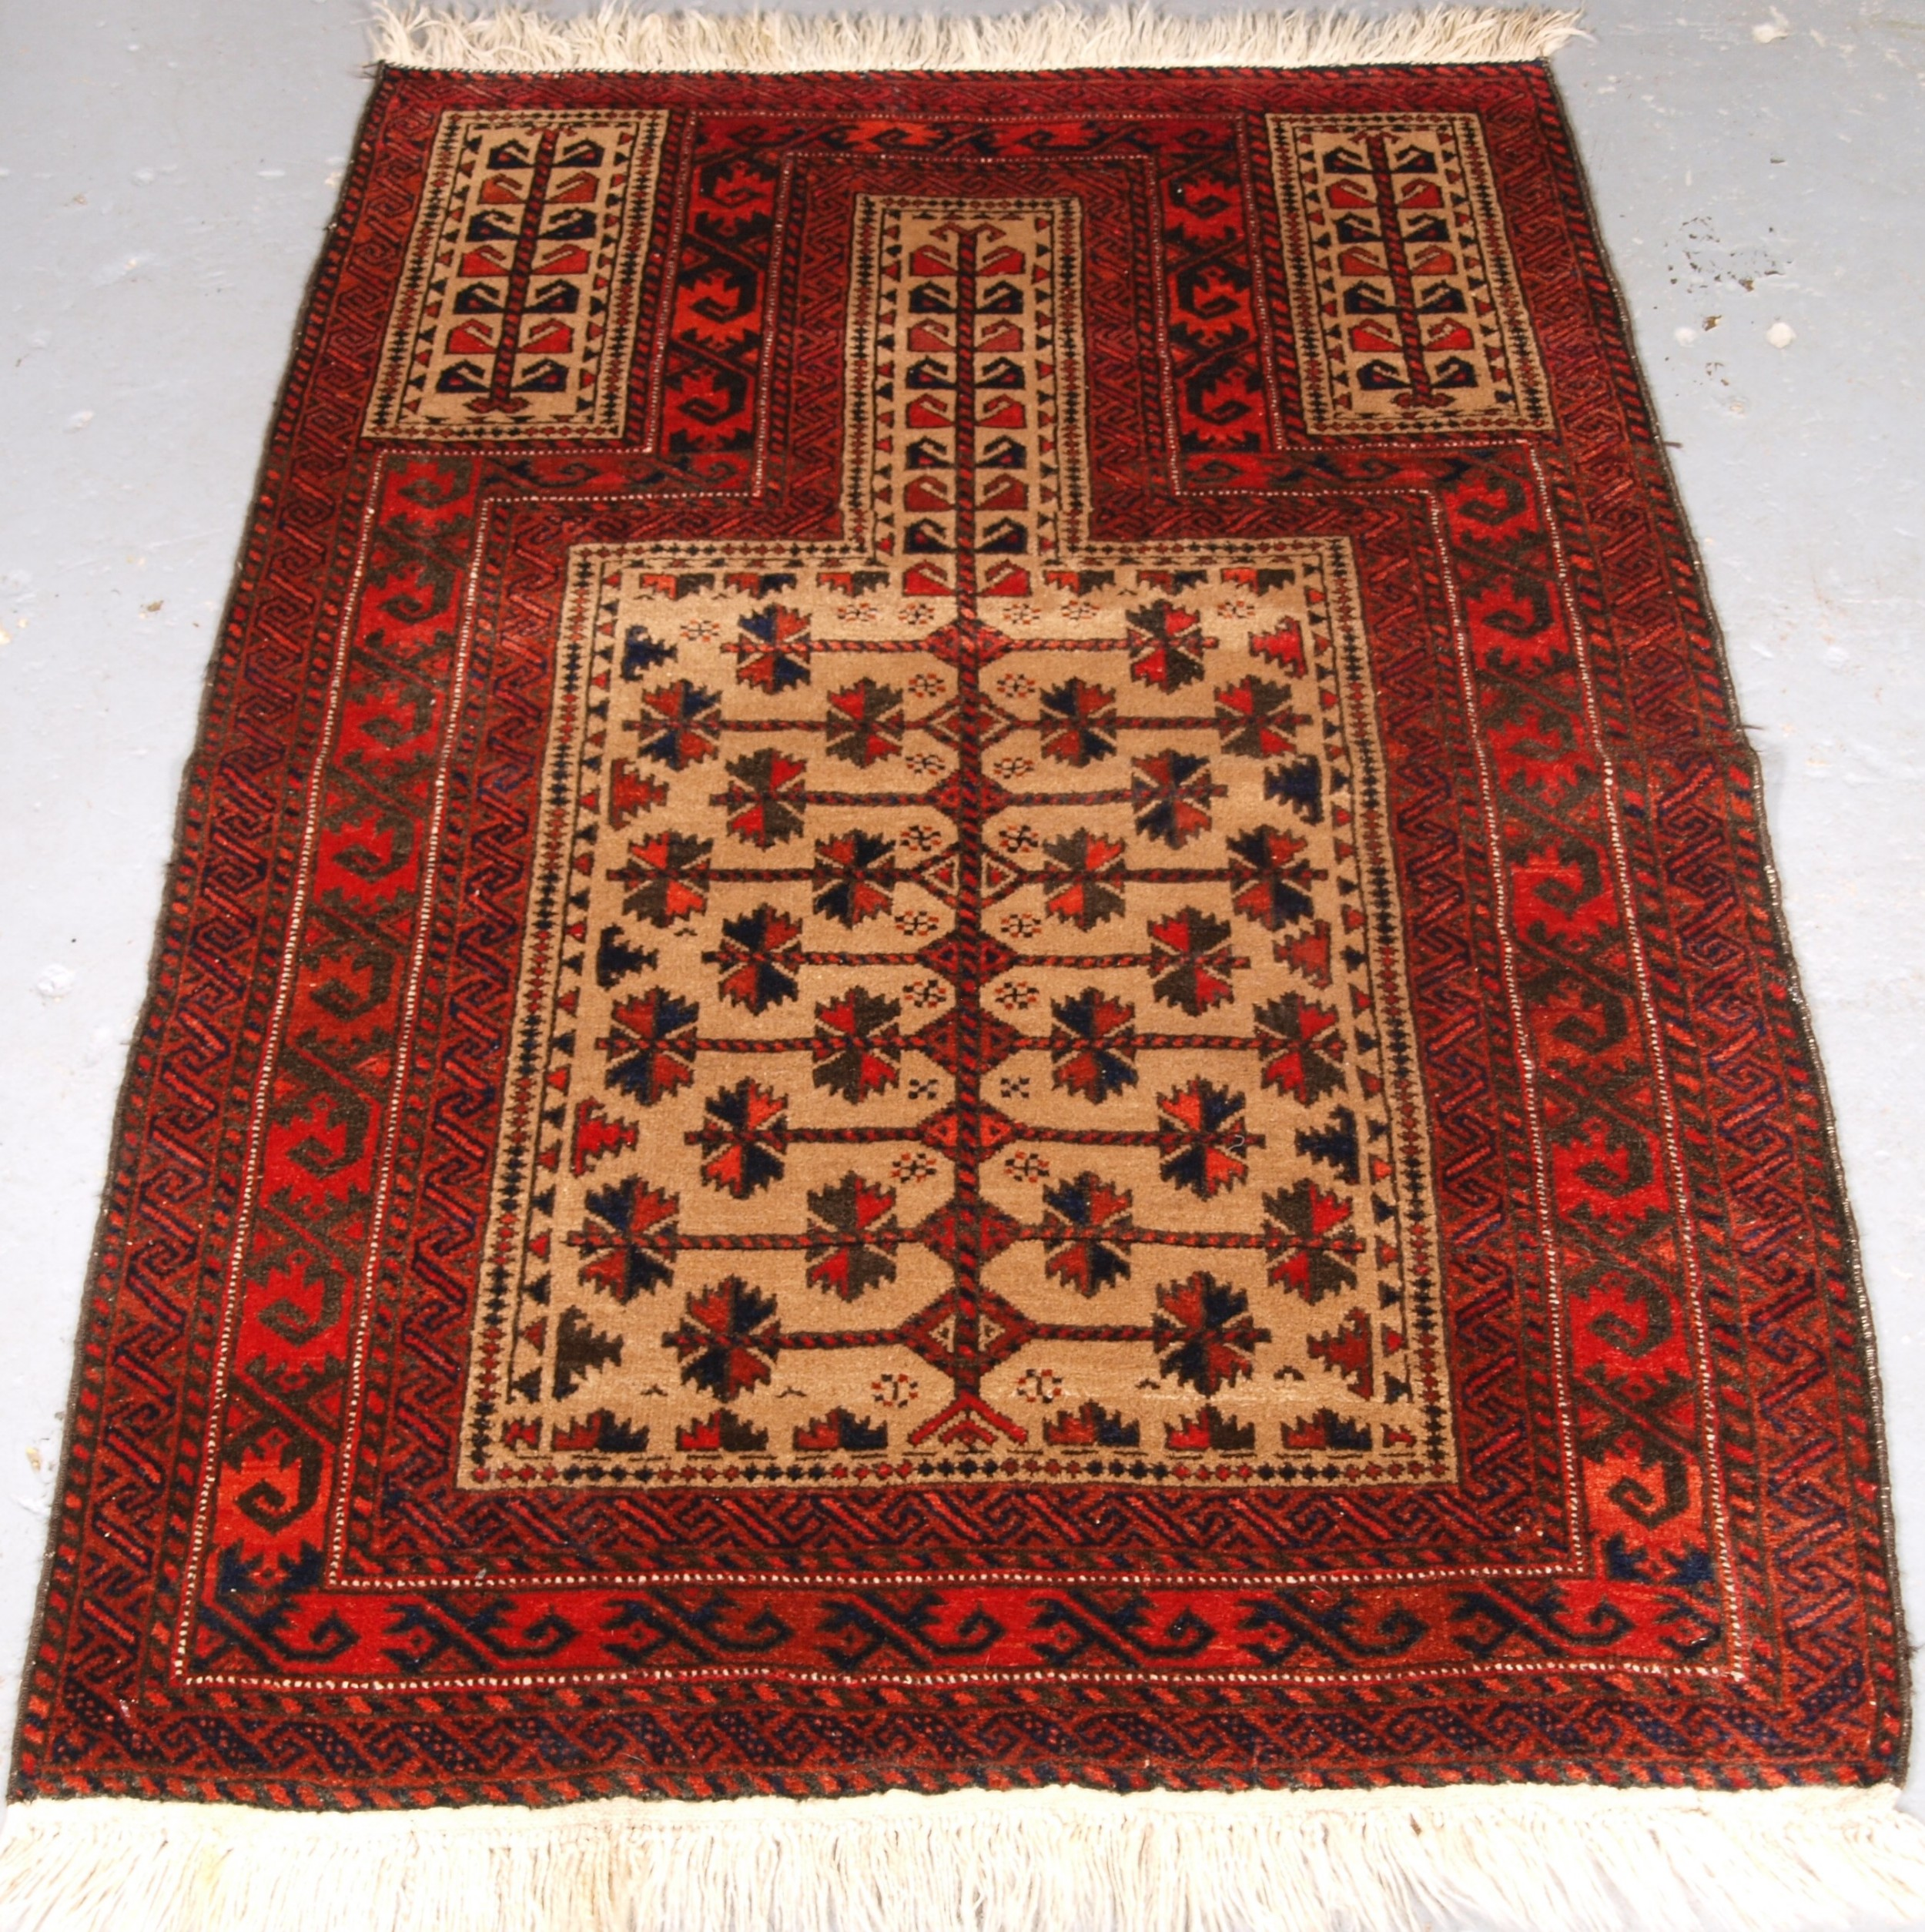 antique camel ground afghan baluch prayer rug with tree of life circa 190020